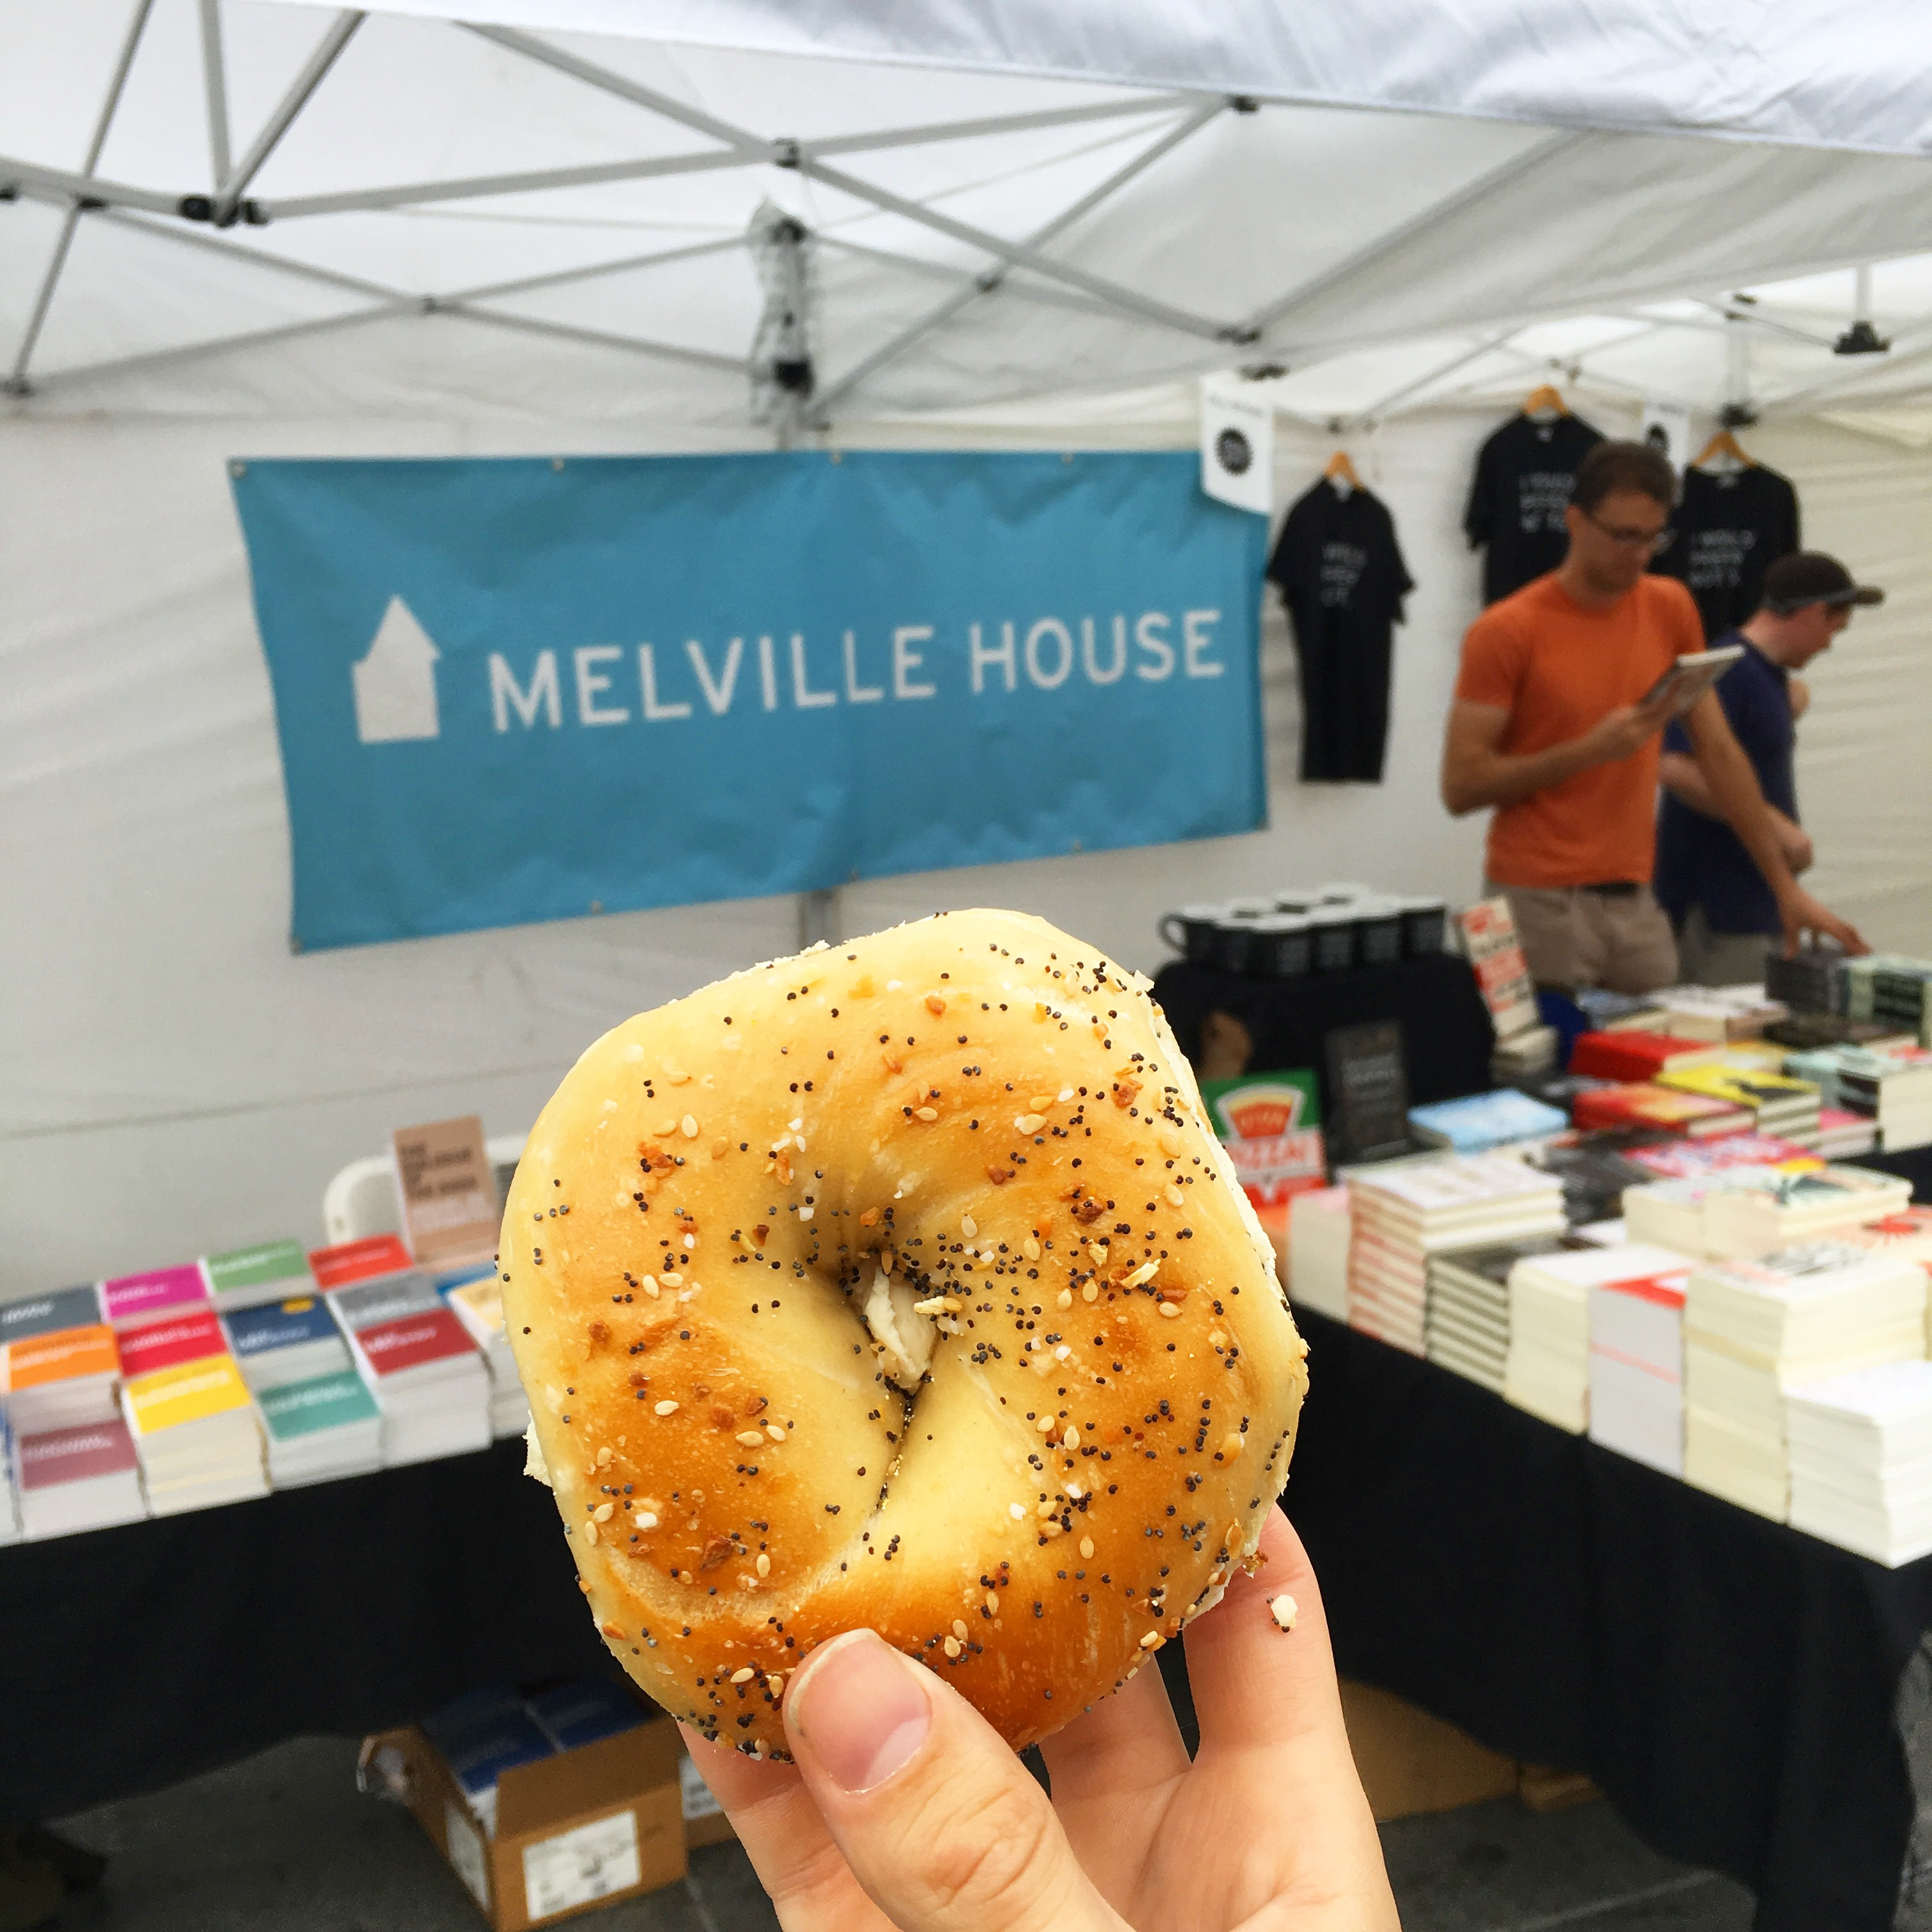 Brooklyn Book Festival 2017: I just wanna say, that was some festival of books